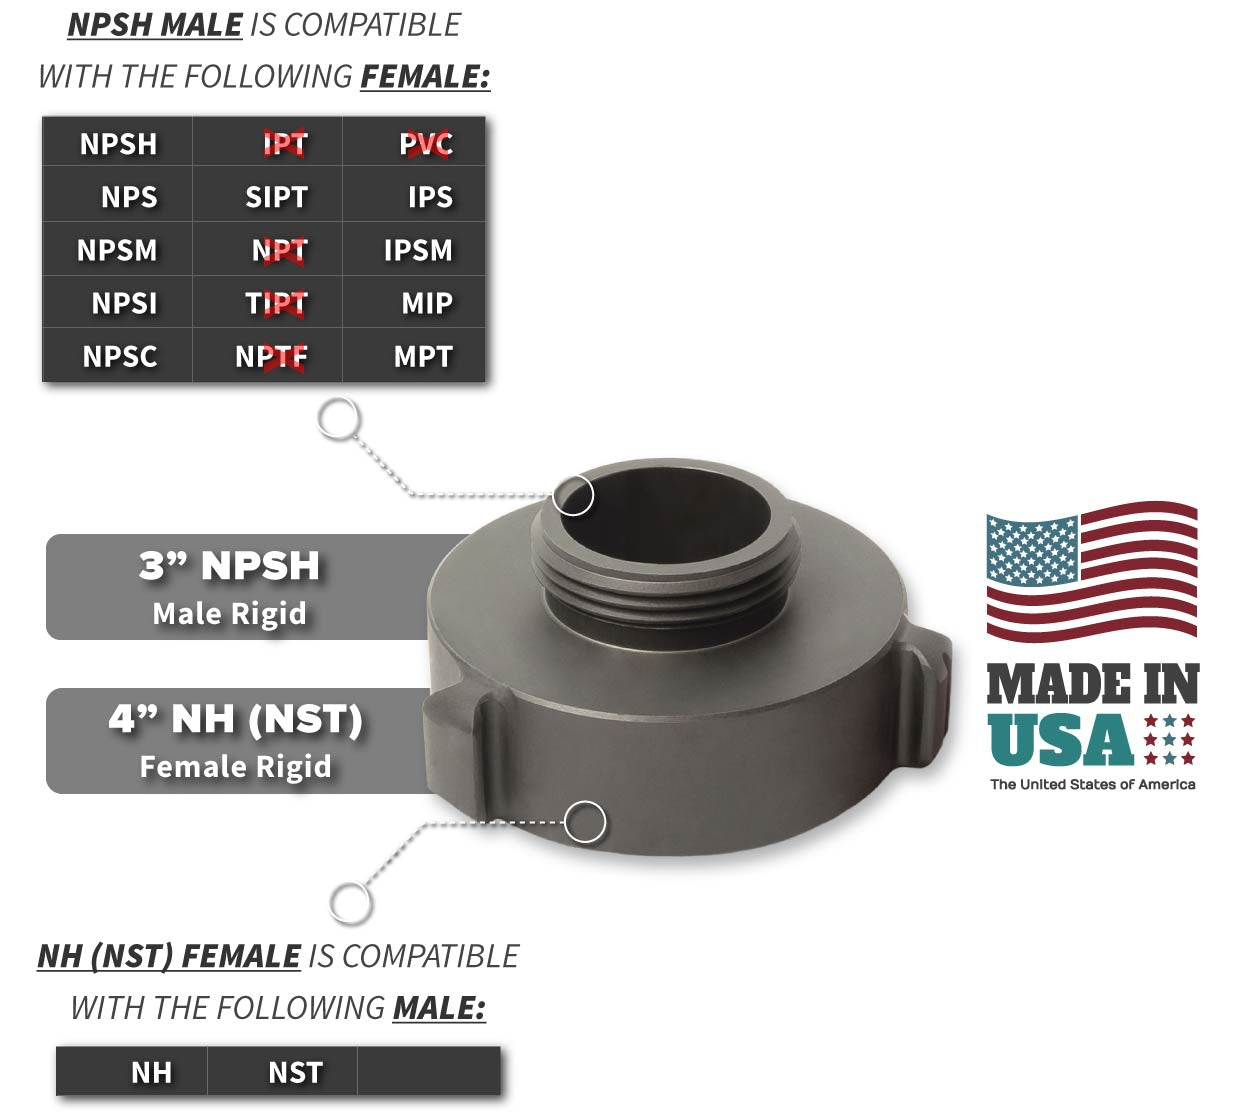 4 Inch NH-NST Female x 3 Inch NPSH Male Compatibility Thread Chart